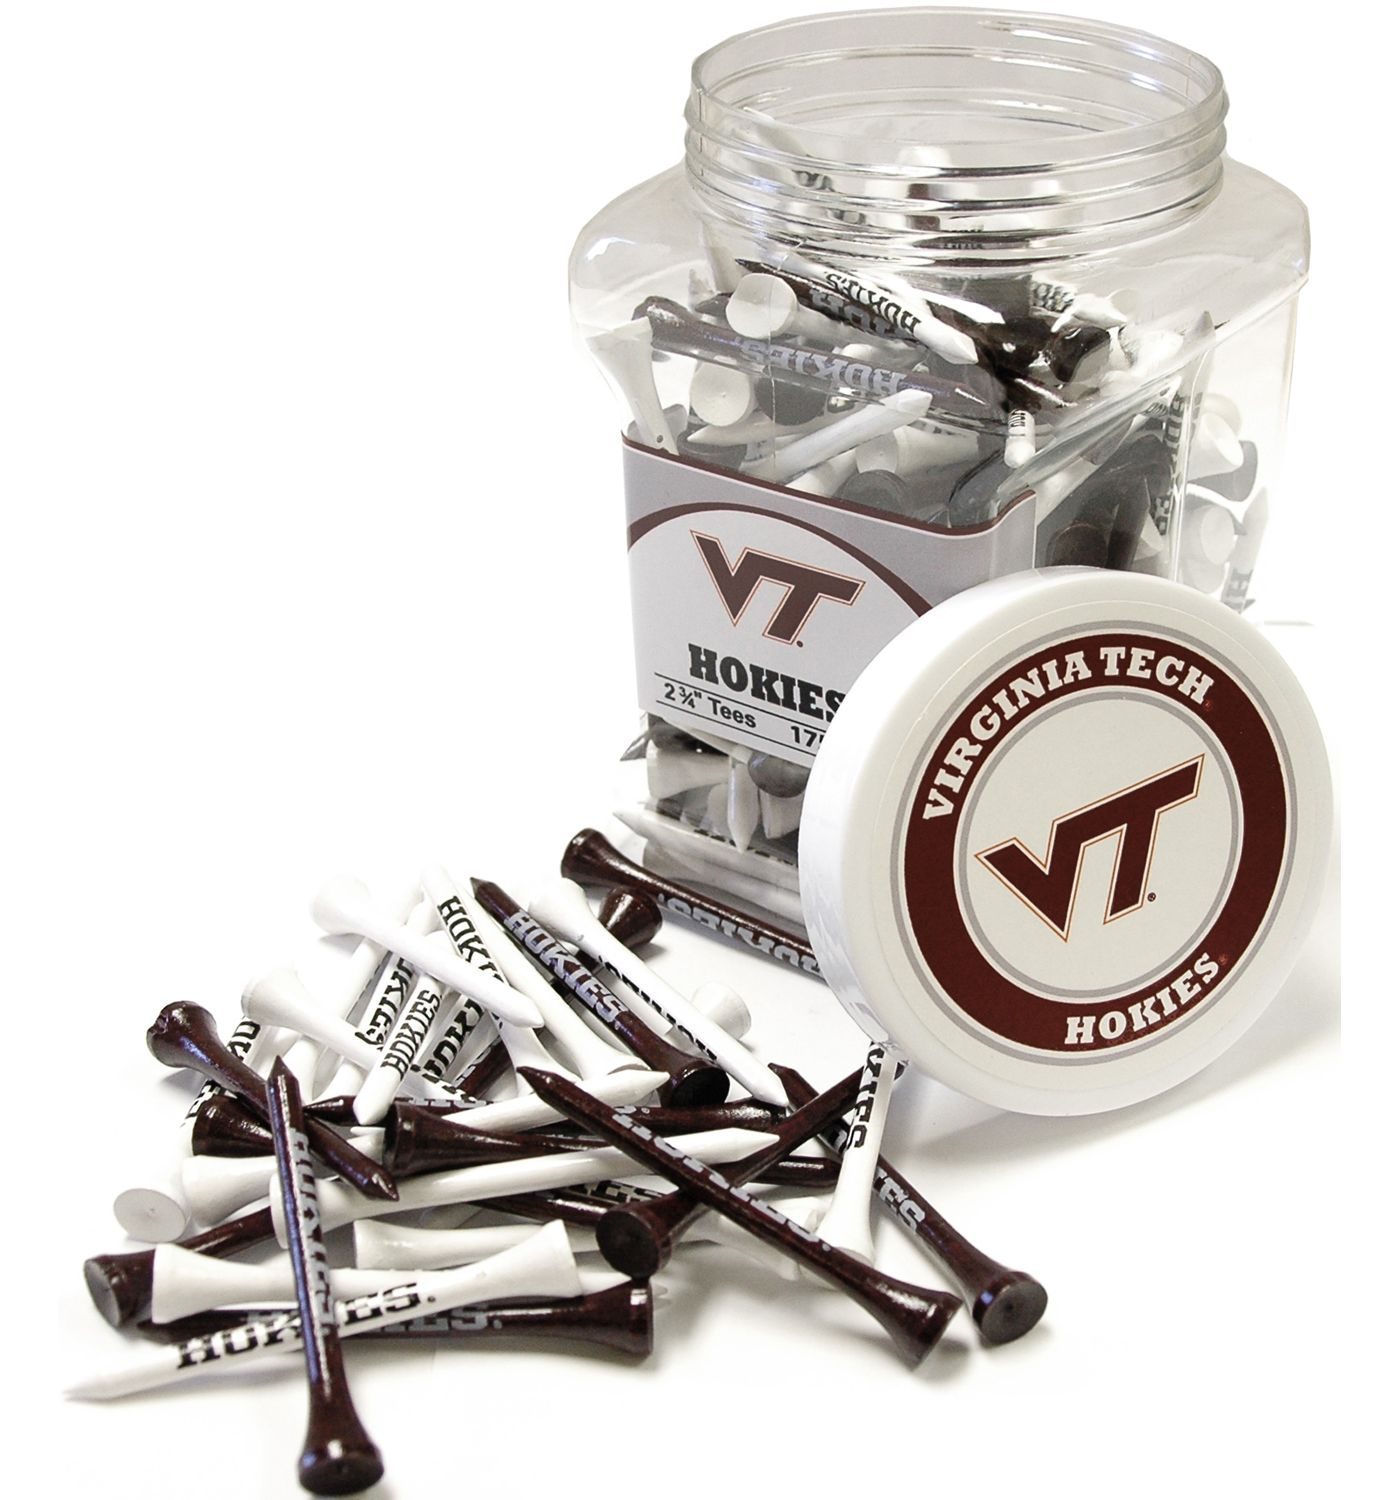 Team Golf Virginia Tech Hokies Tee Jar - 175 Pack